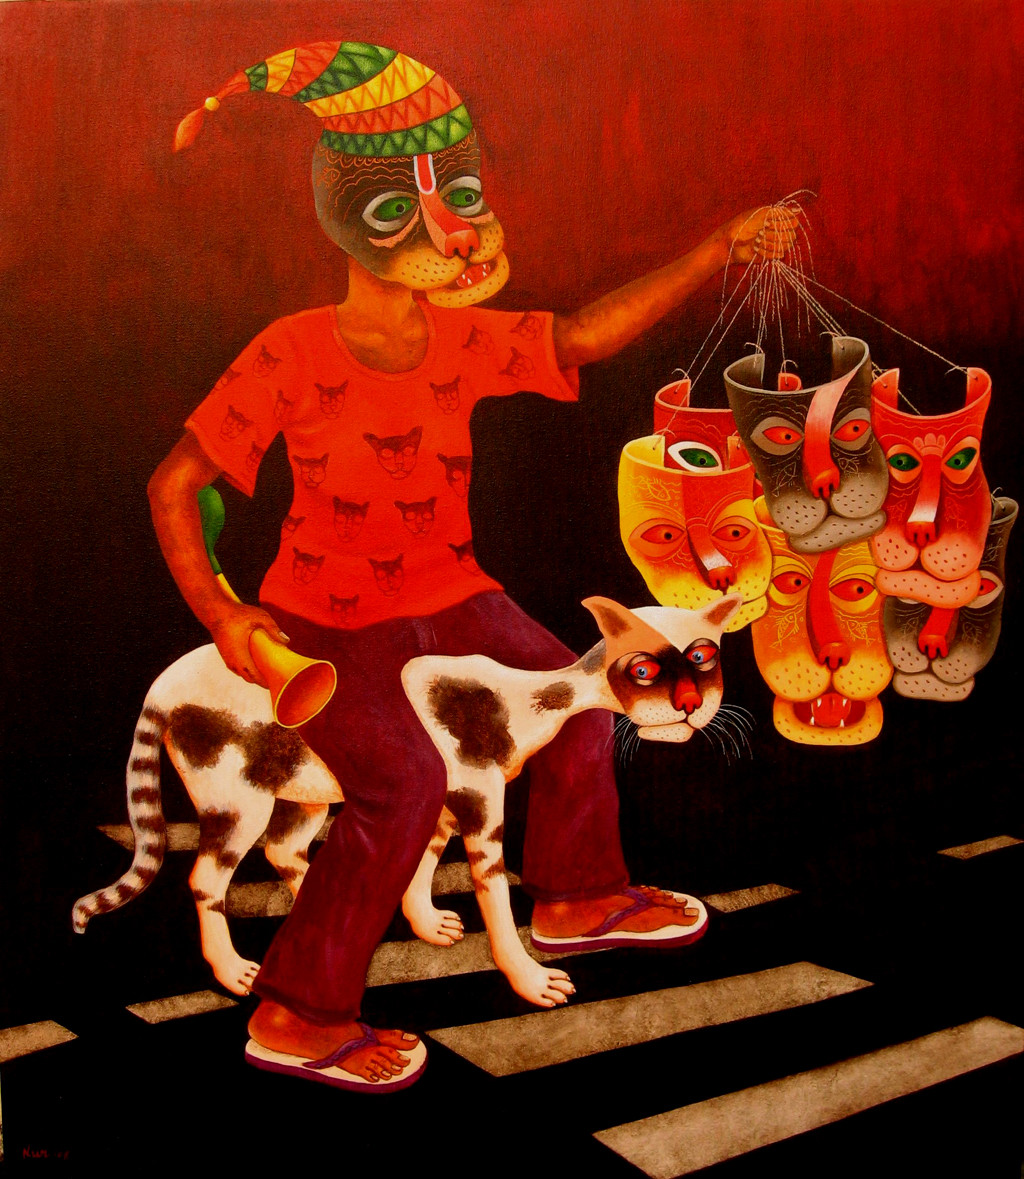 DREAM SELLER by SK NUR ALI, Decorative Painting, Acrylic on Canvas, Brown color